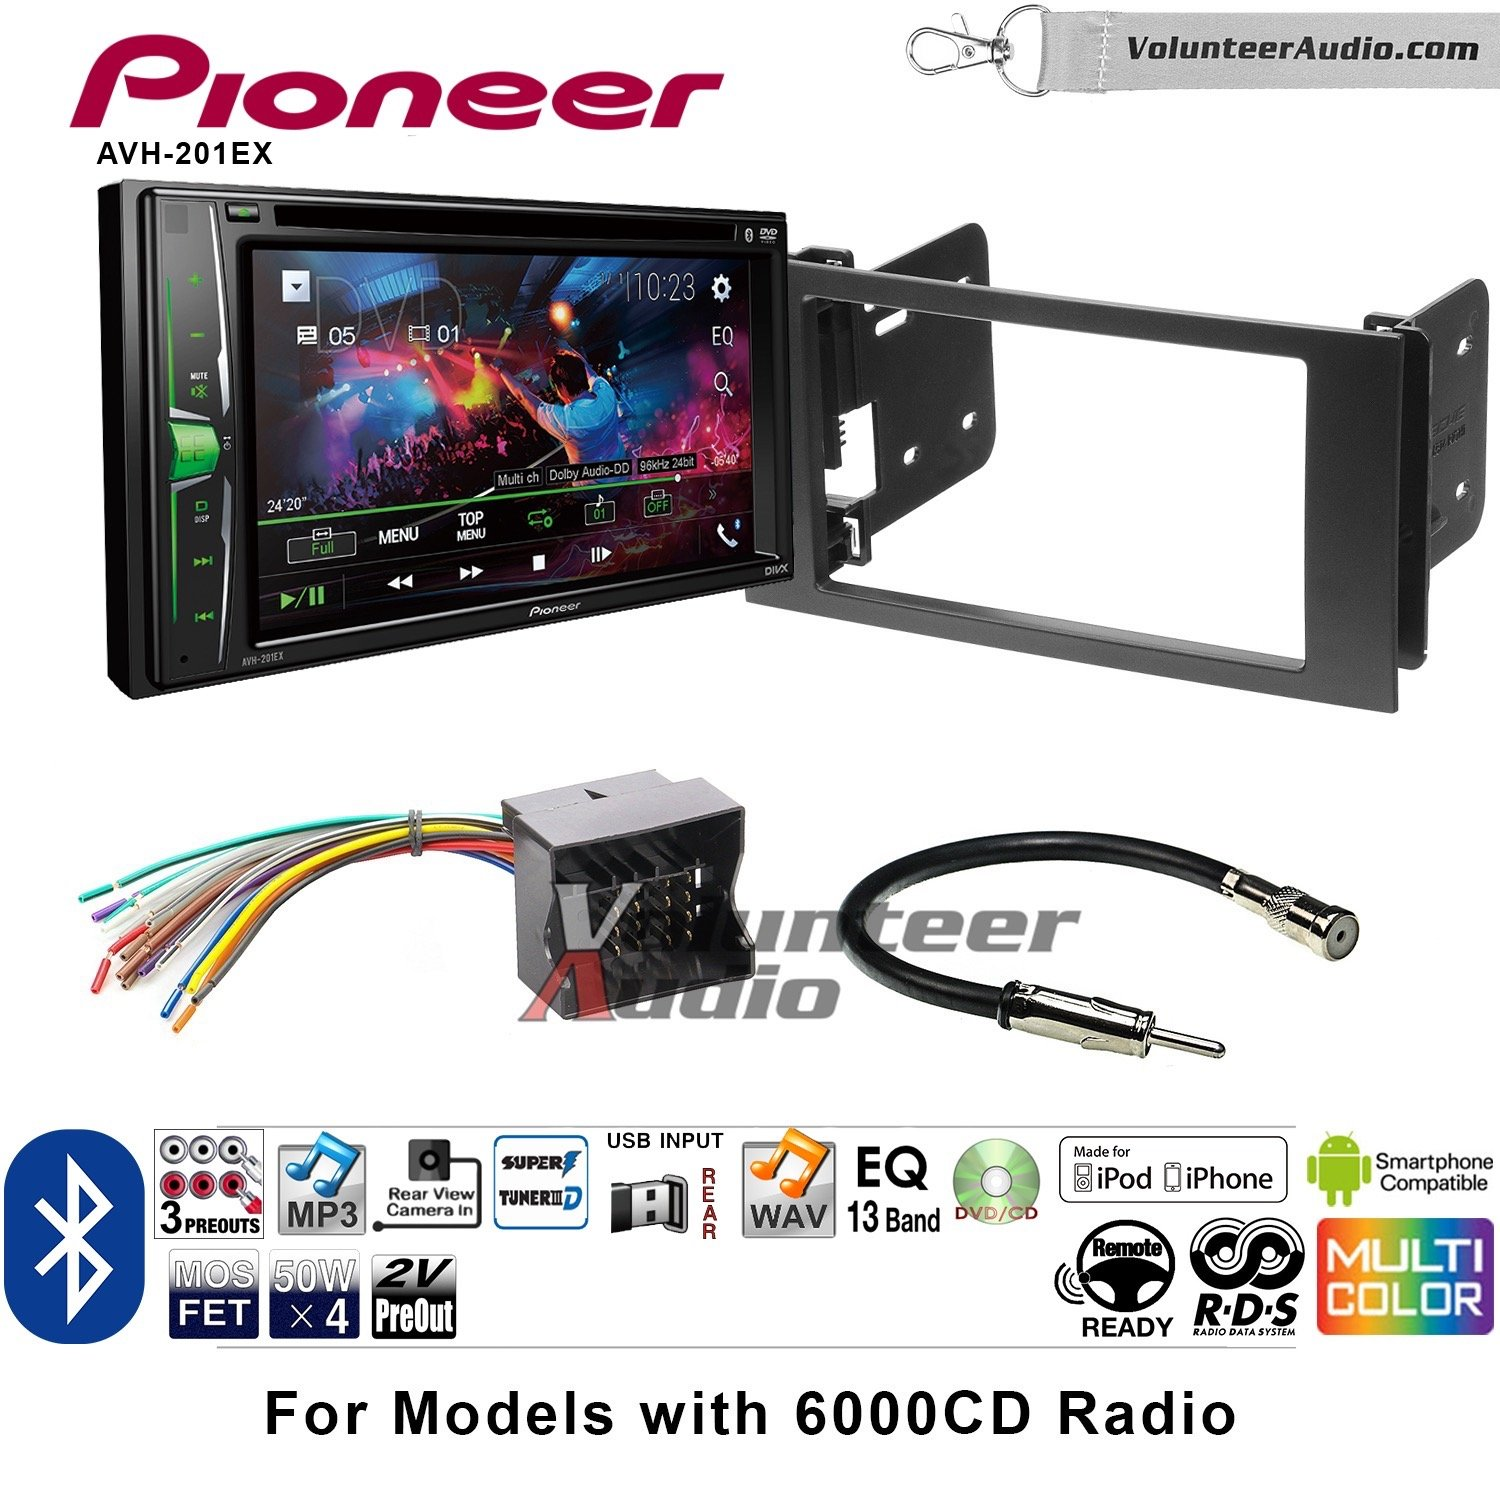 Volunteer Audio Pioneer AVH-201EX Double Din Radio Install Kit with CD Player Bluetooth USB/AUX Fits 2010-2011 Transit Connect by Volunteer Audio (Image #1)